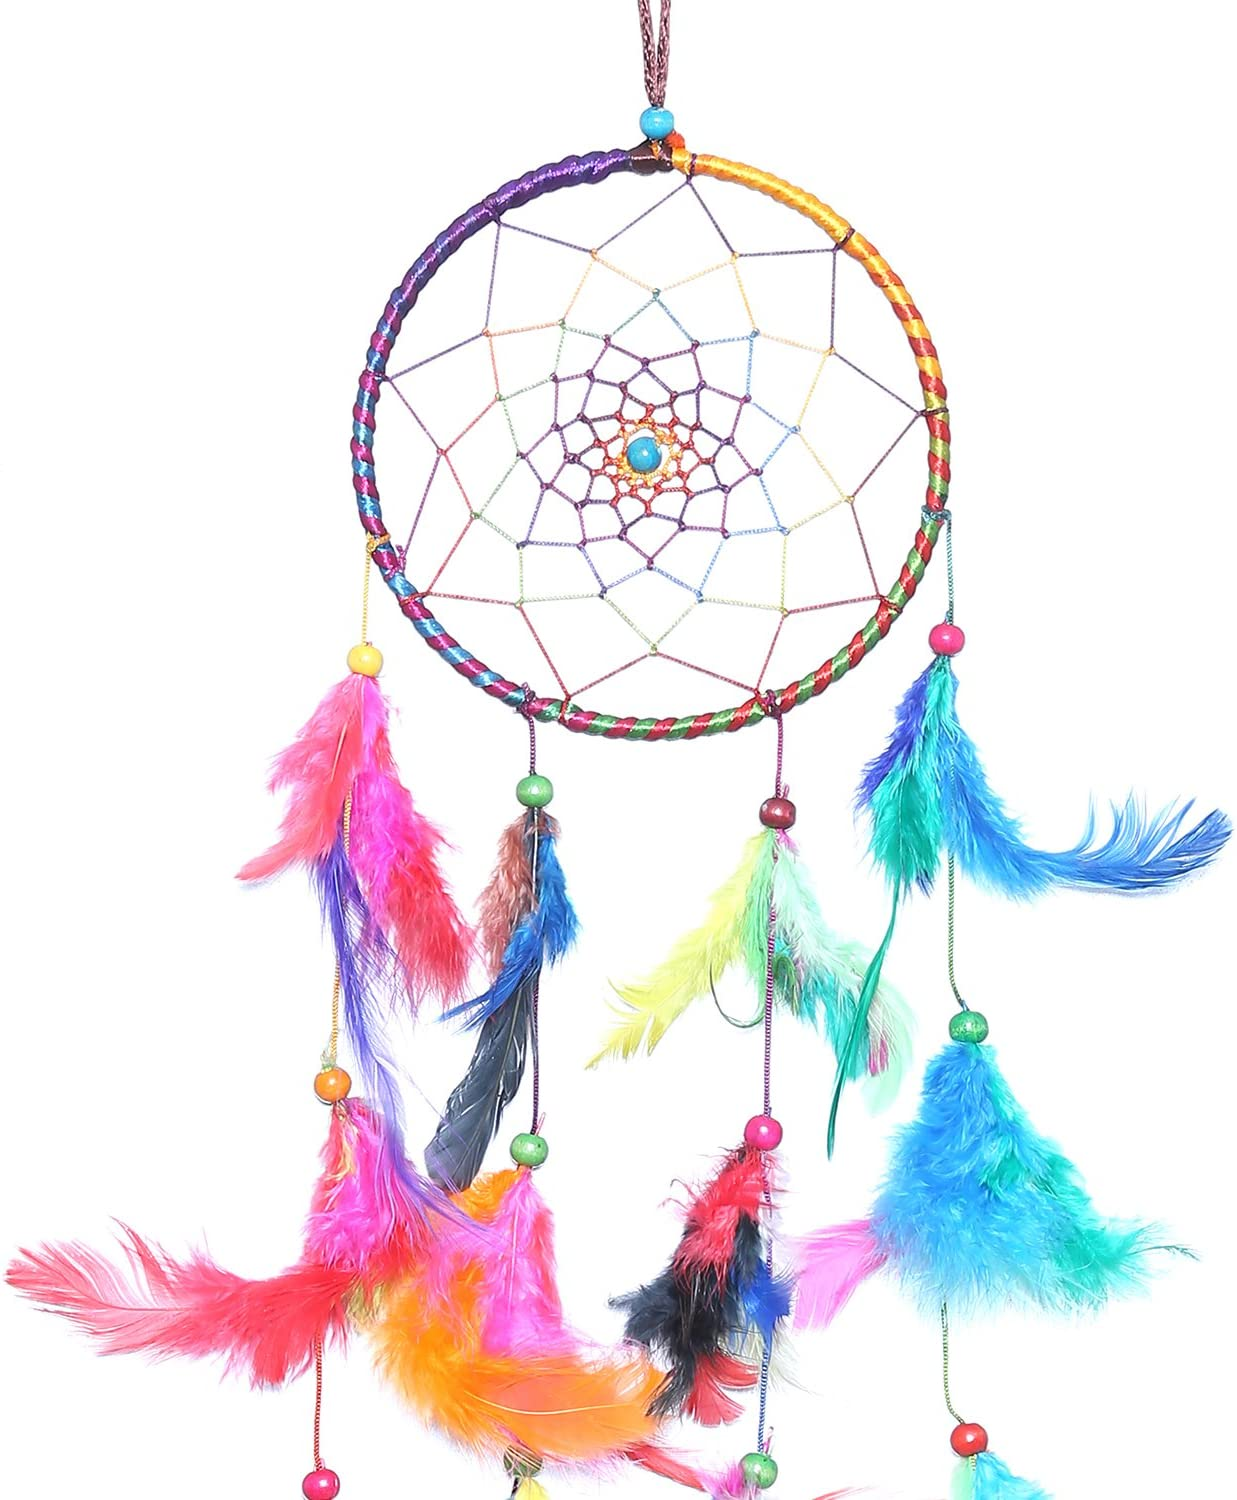 - Amazon.com : Purpledip Dream Catcher Rainbow Colors - Handmade